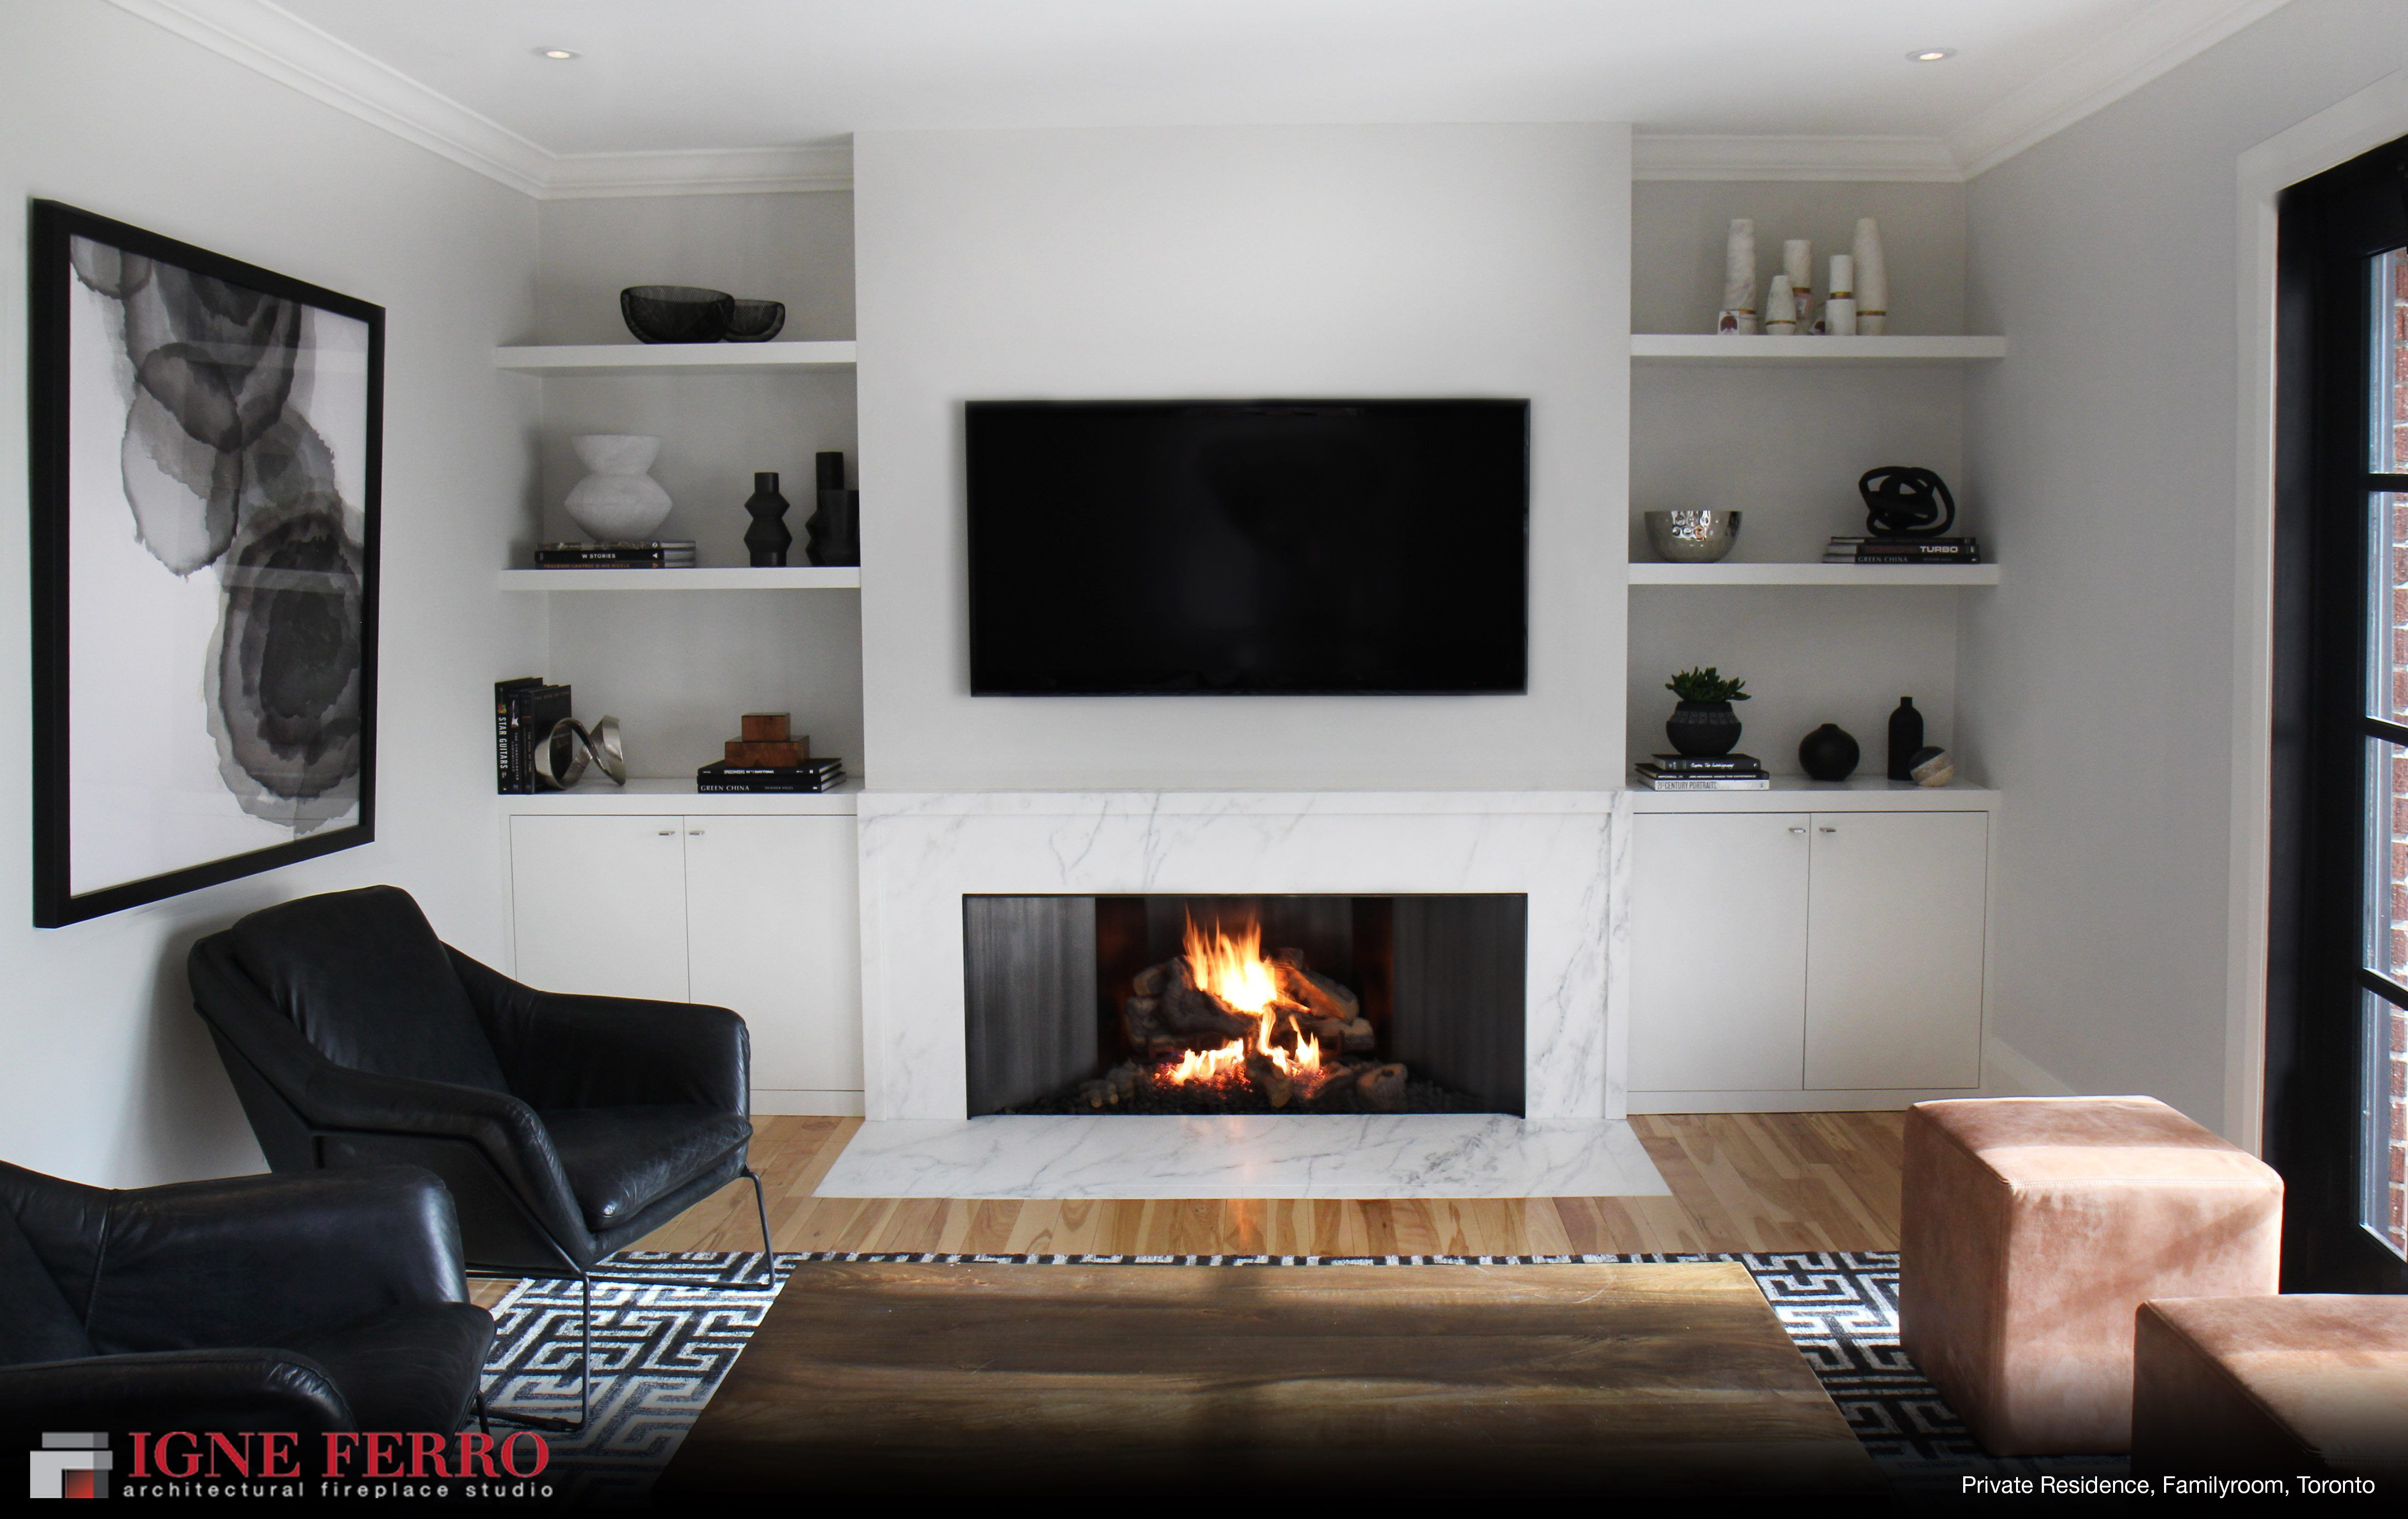 Gr Residence Family Room Gas Fireplace In Torontodesigned By Igne